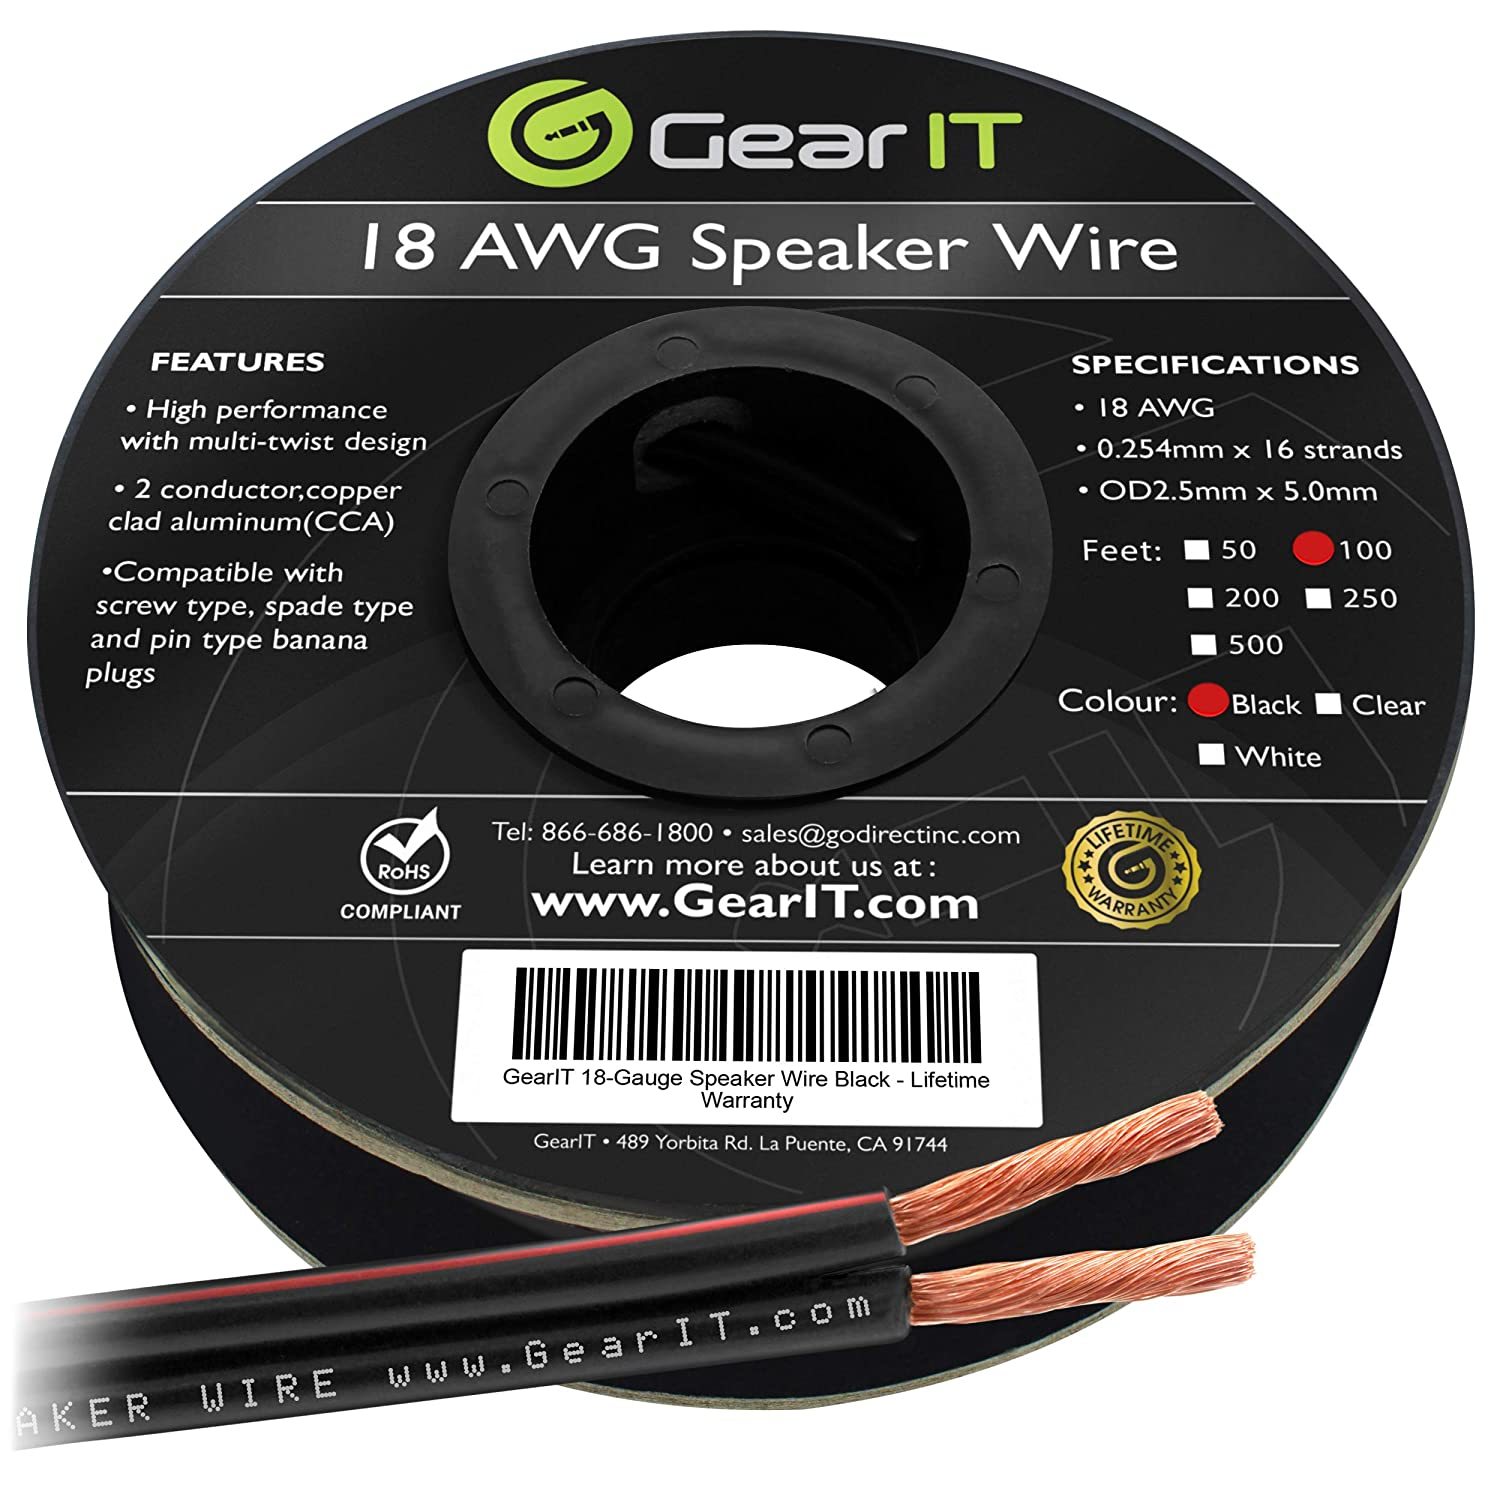 18AWG Speaker Wire, GearIT Pro Series 18 AWG Gauge Speaker Wire Cable (100 Feet / 30.48 Meters) Great Use for Home Theater Speakers and Car Speakers Black